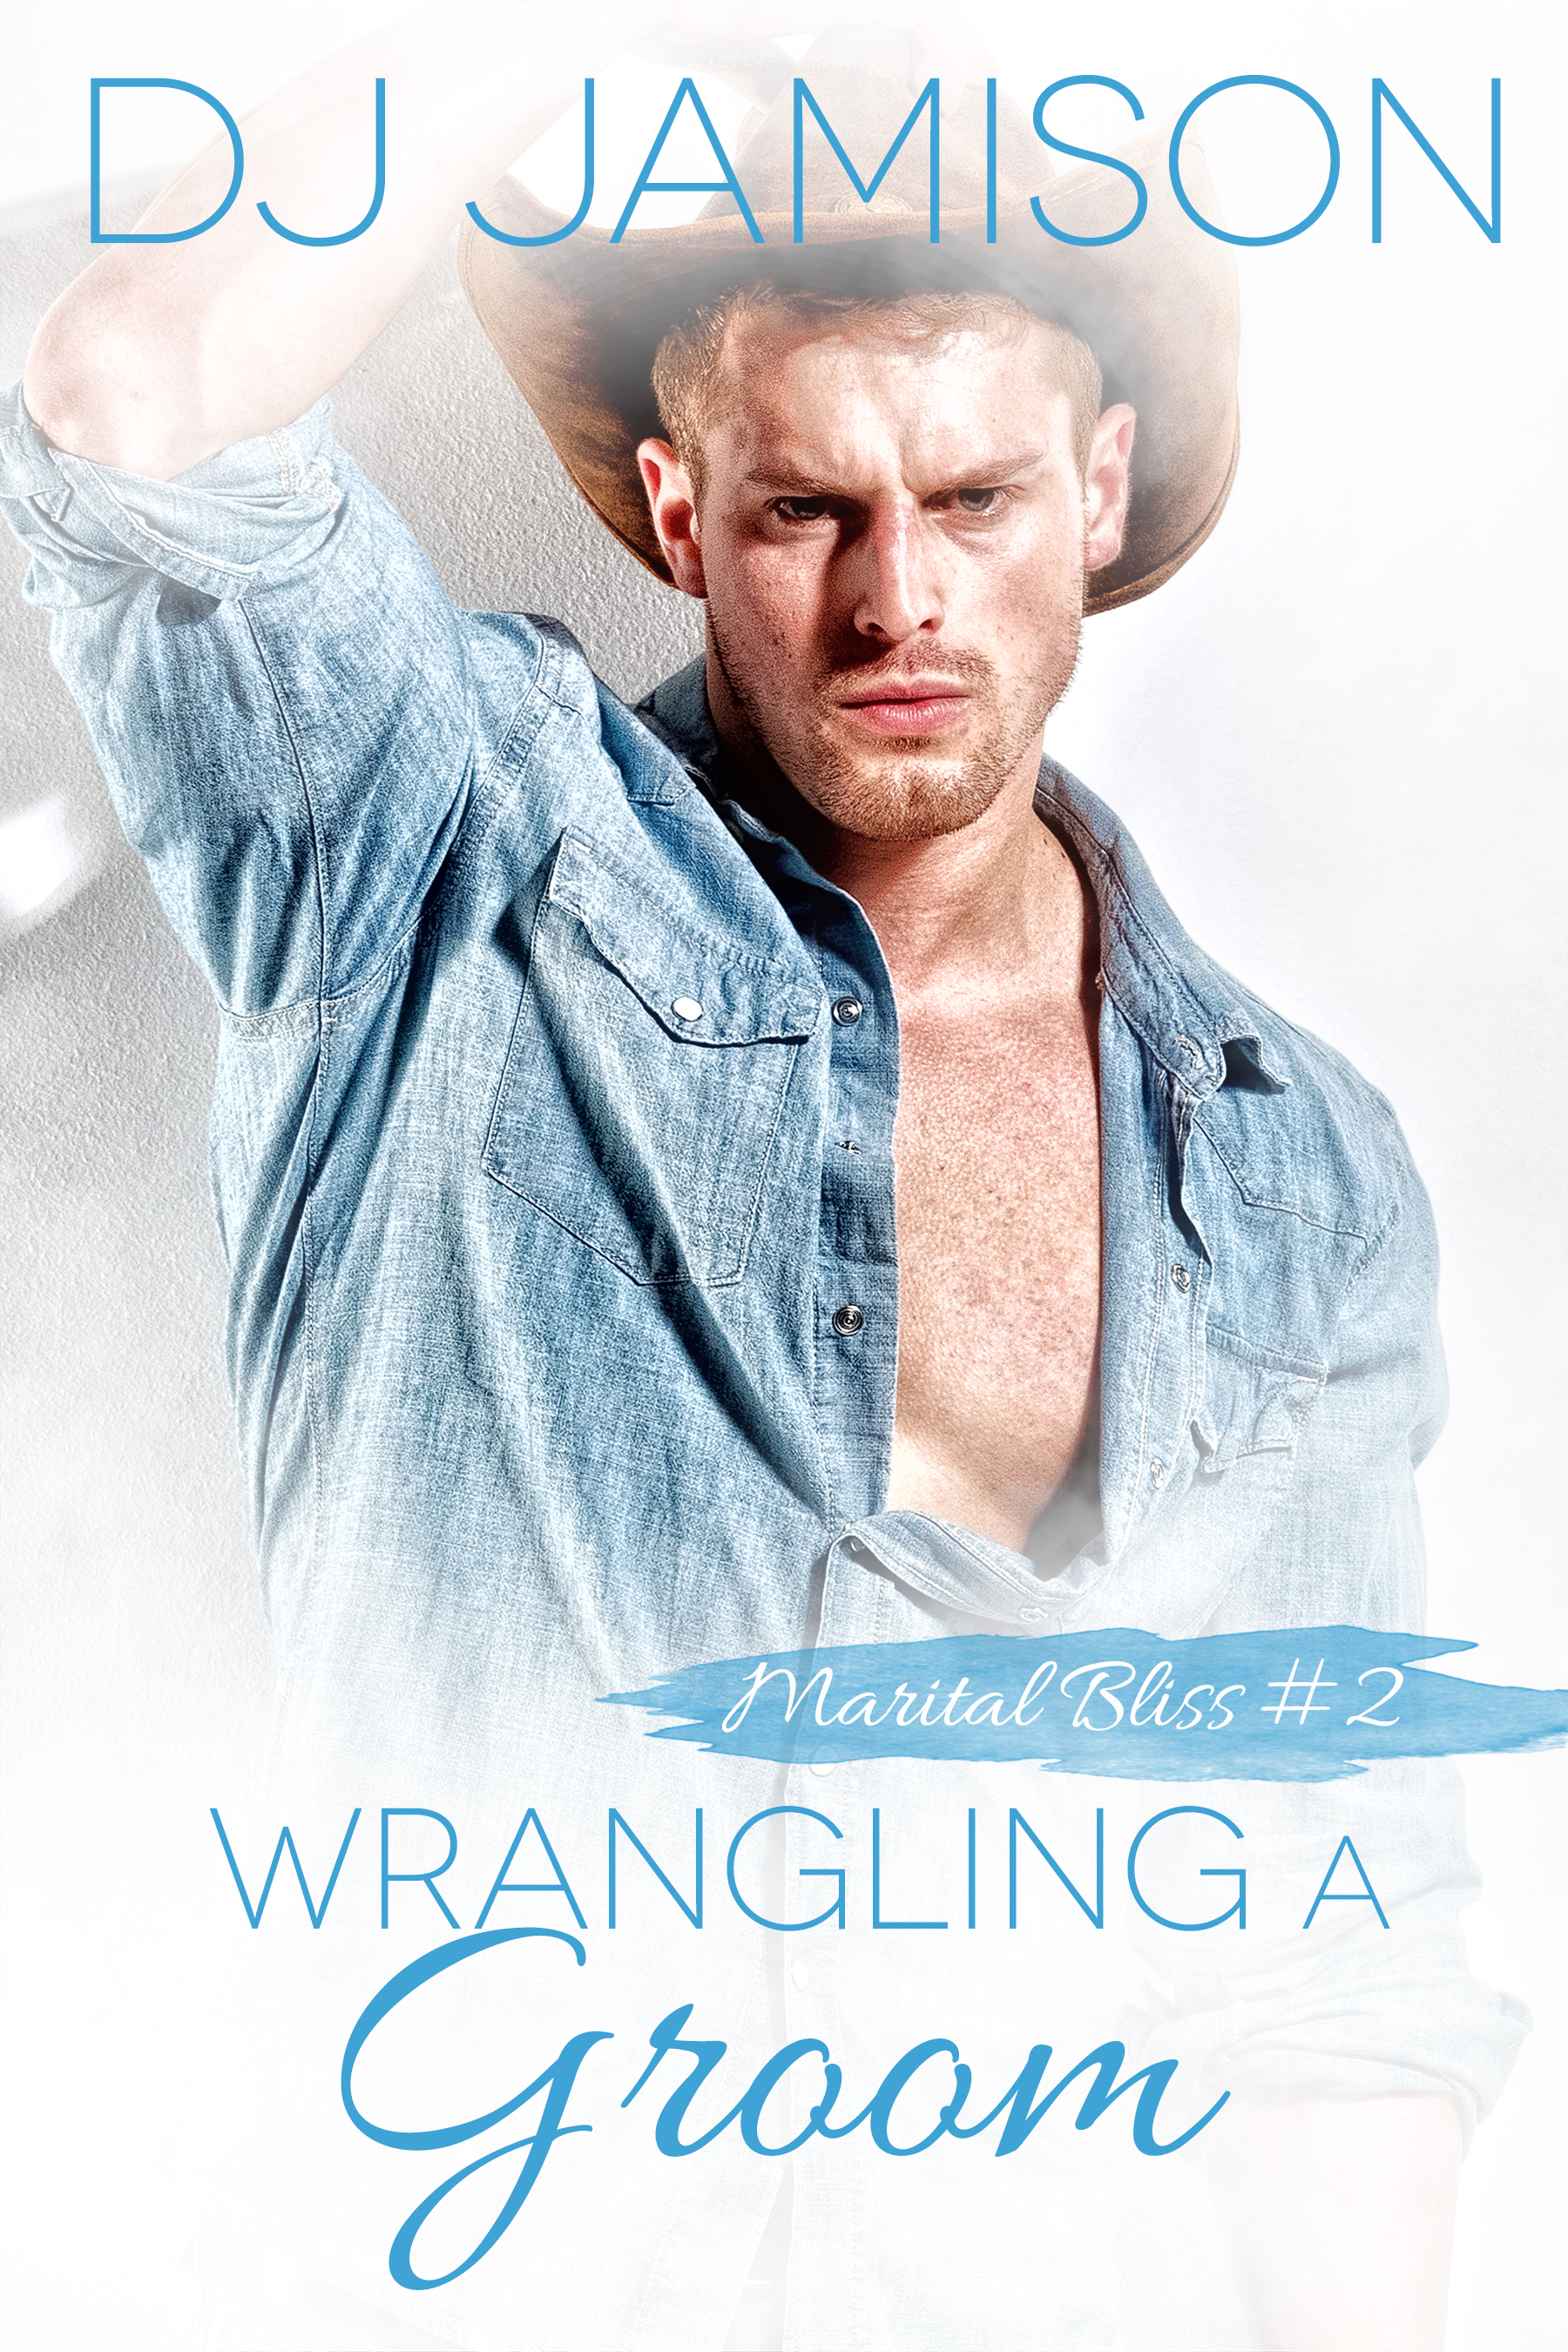 Guest Post and Giveaway: Wrangling a Groom by DJ Jamison